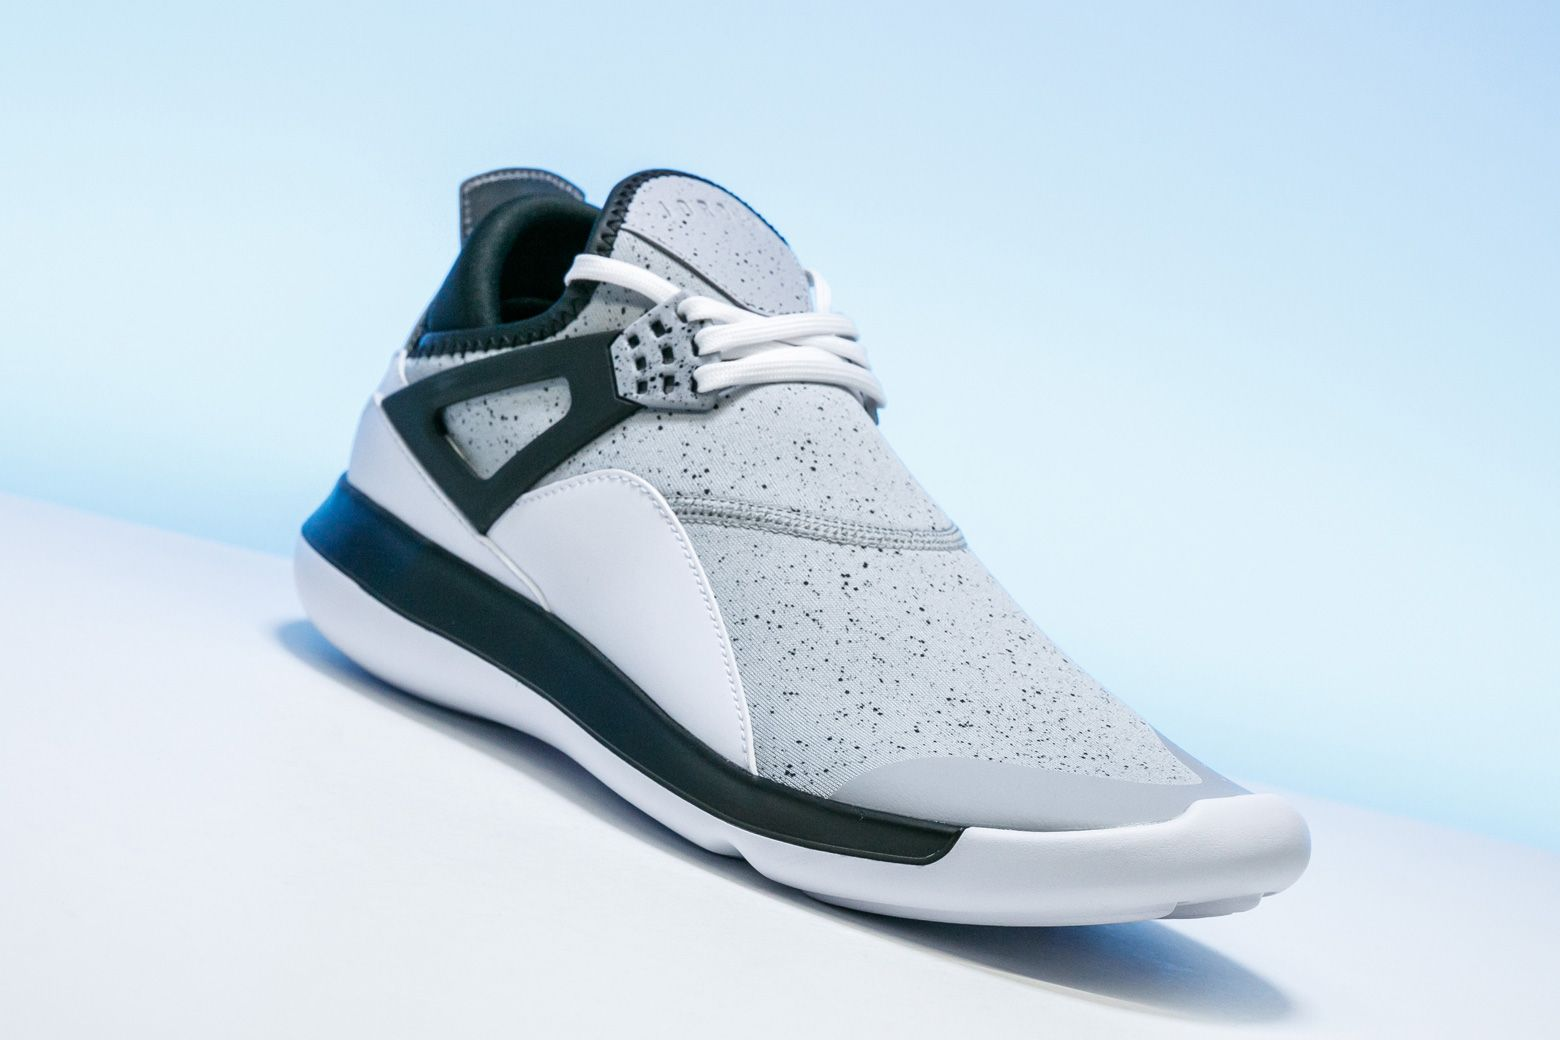 4086ba2ed370eb The Jordan Fly  89 remixes the classic Air Jordan 4 into a lightweight  silhouette with a Lunarlon sole.